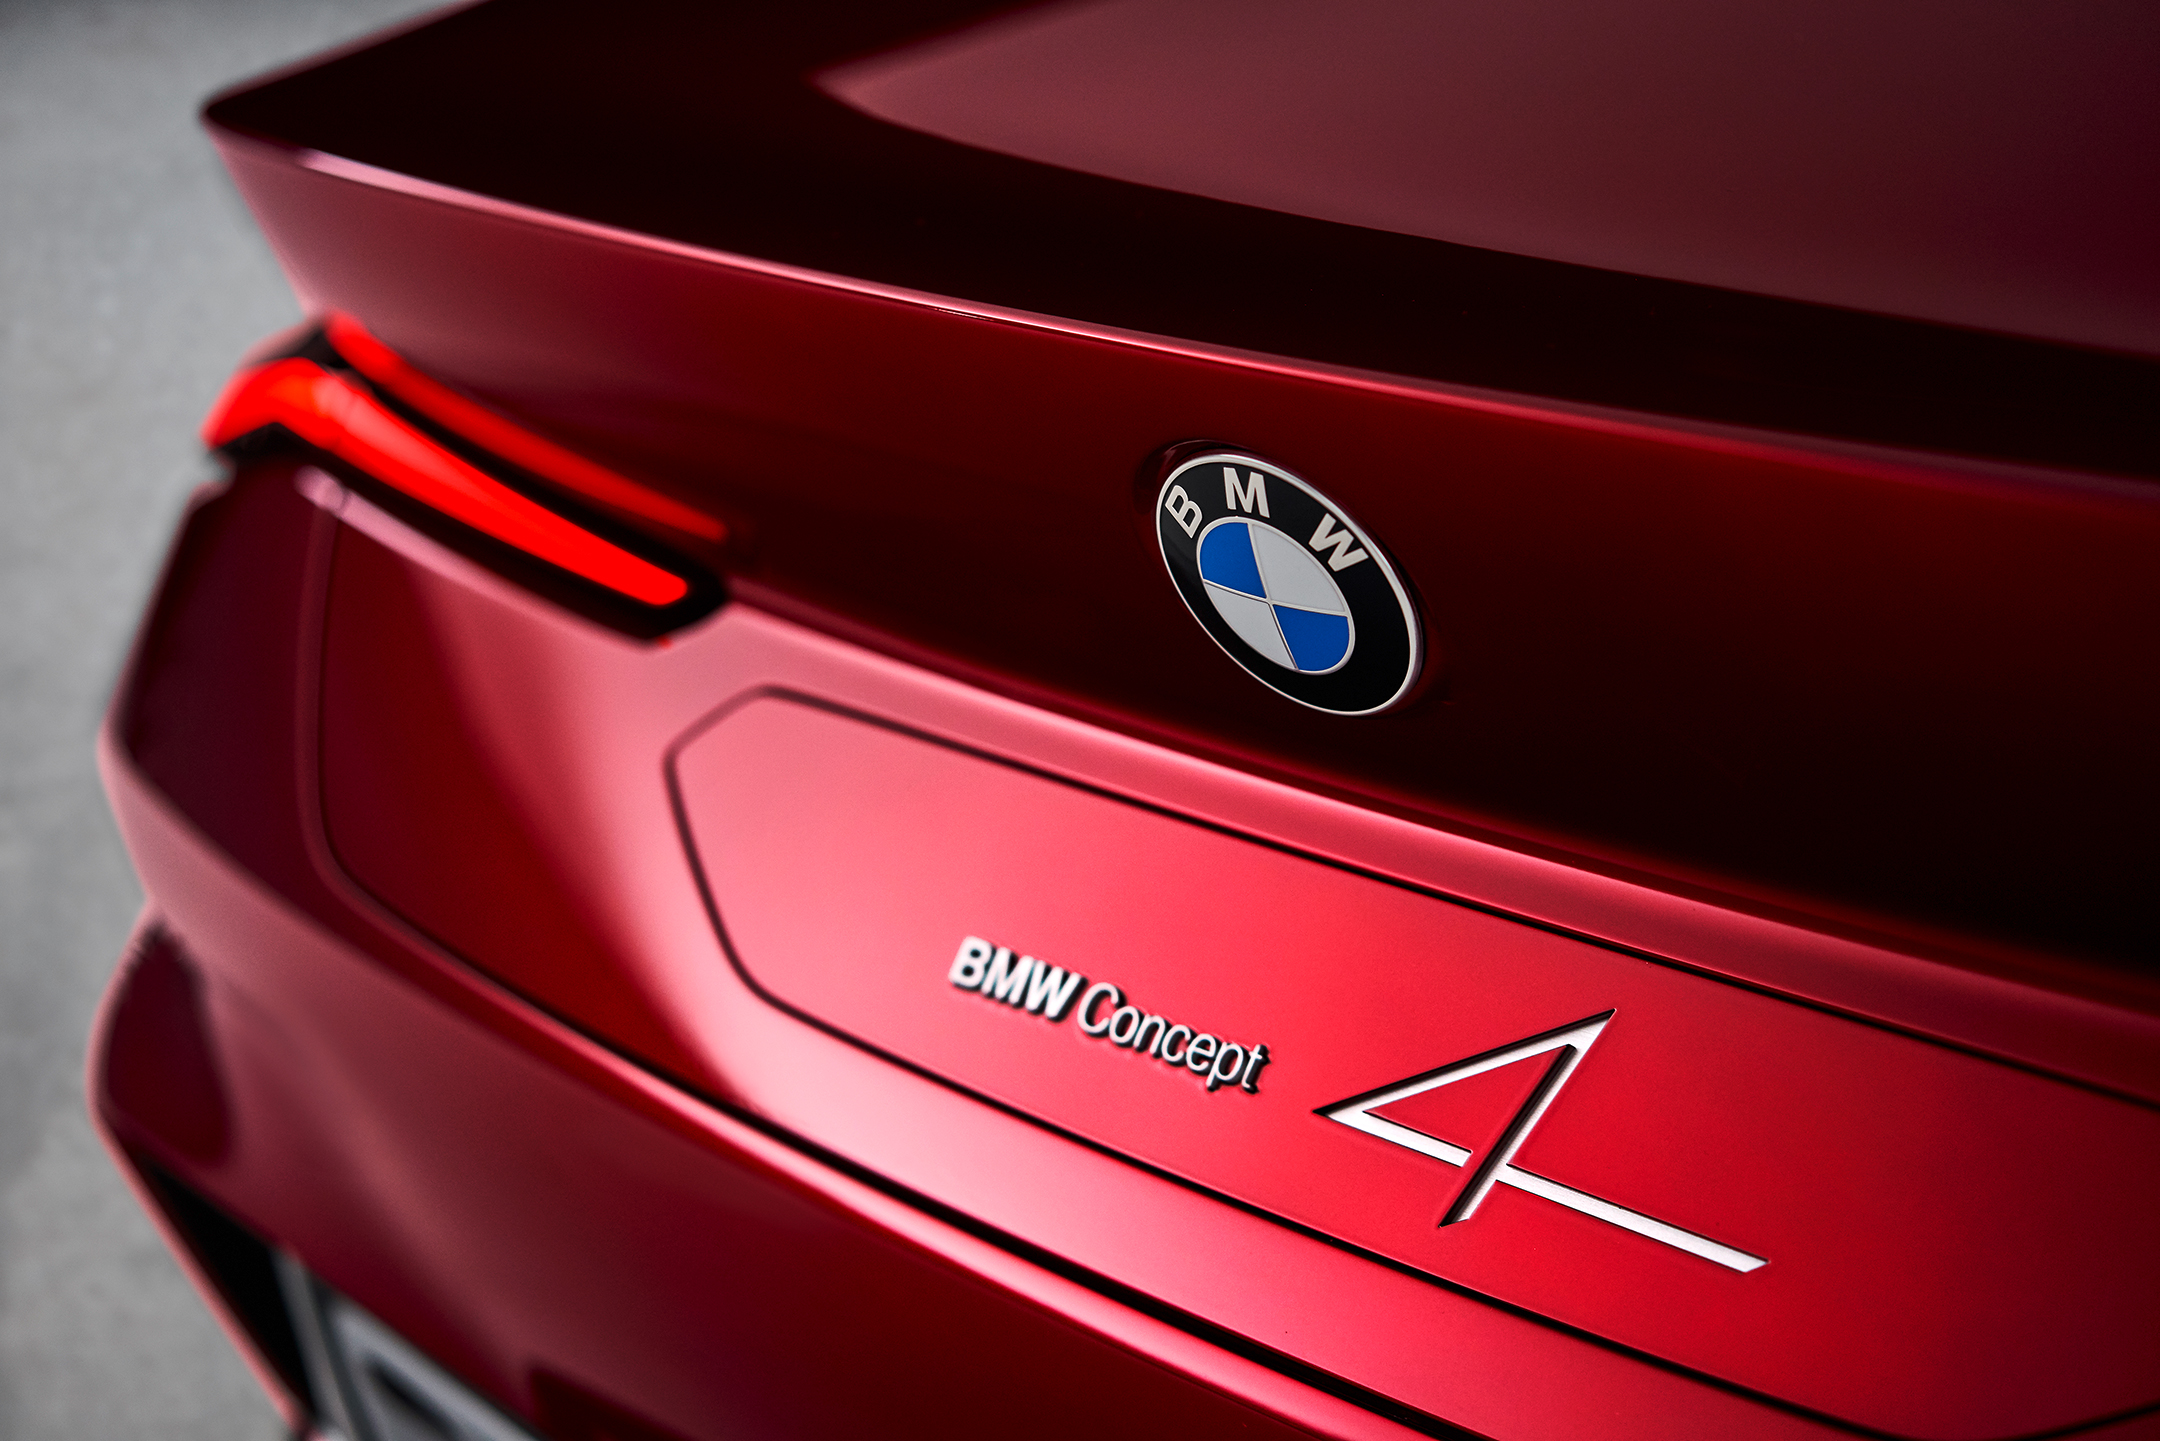 BMW Concept 4 - 2019 - rear logo